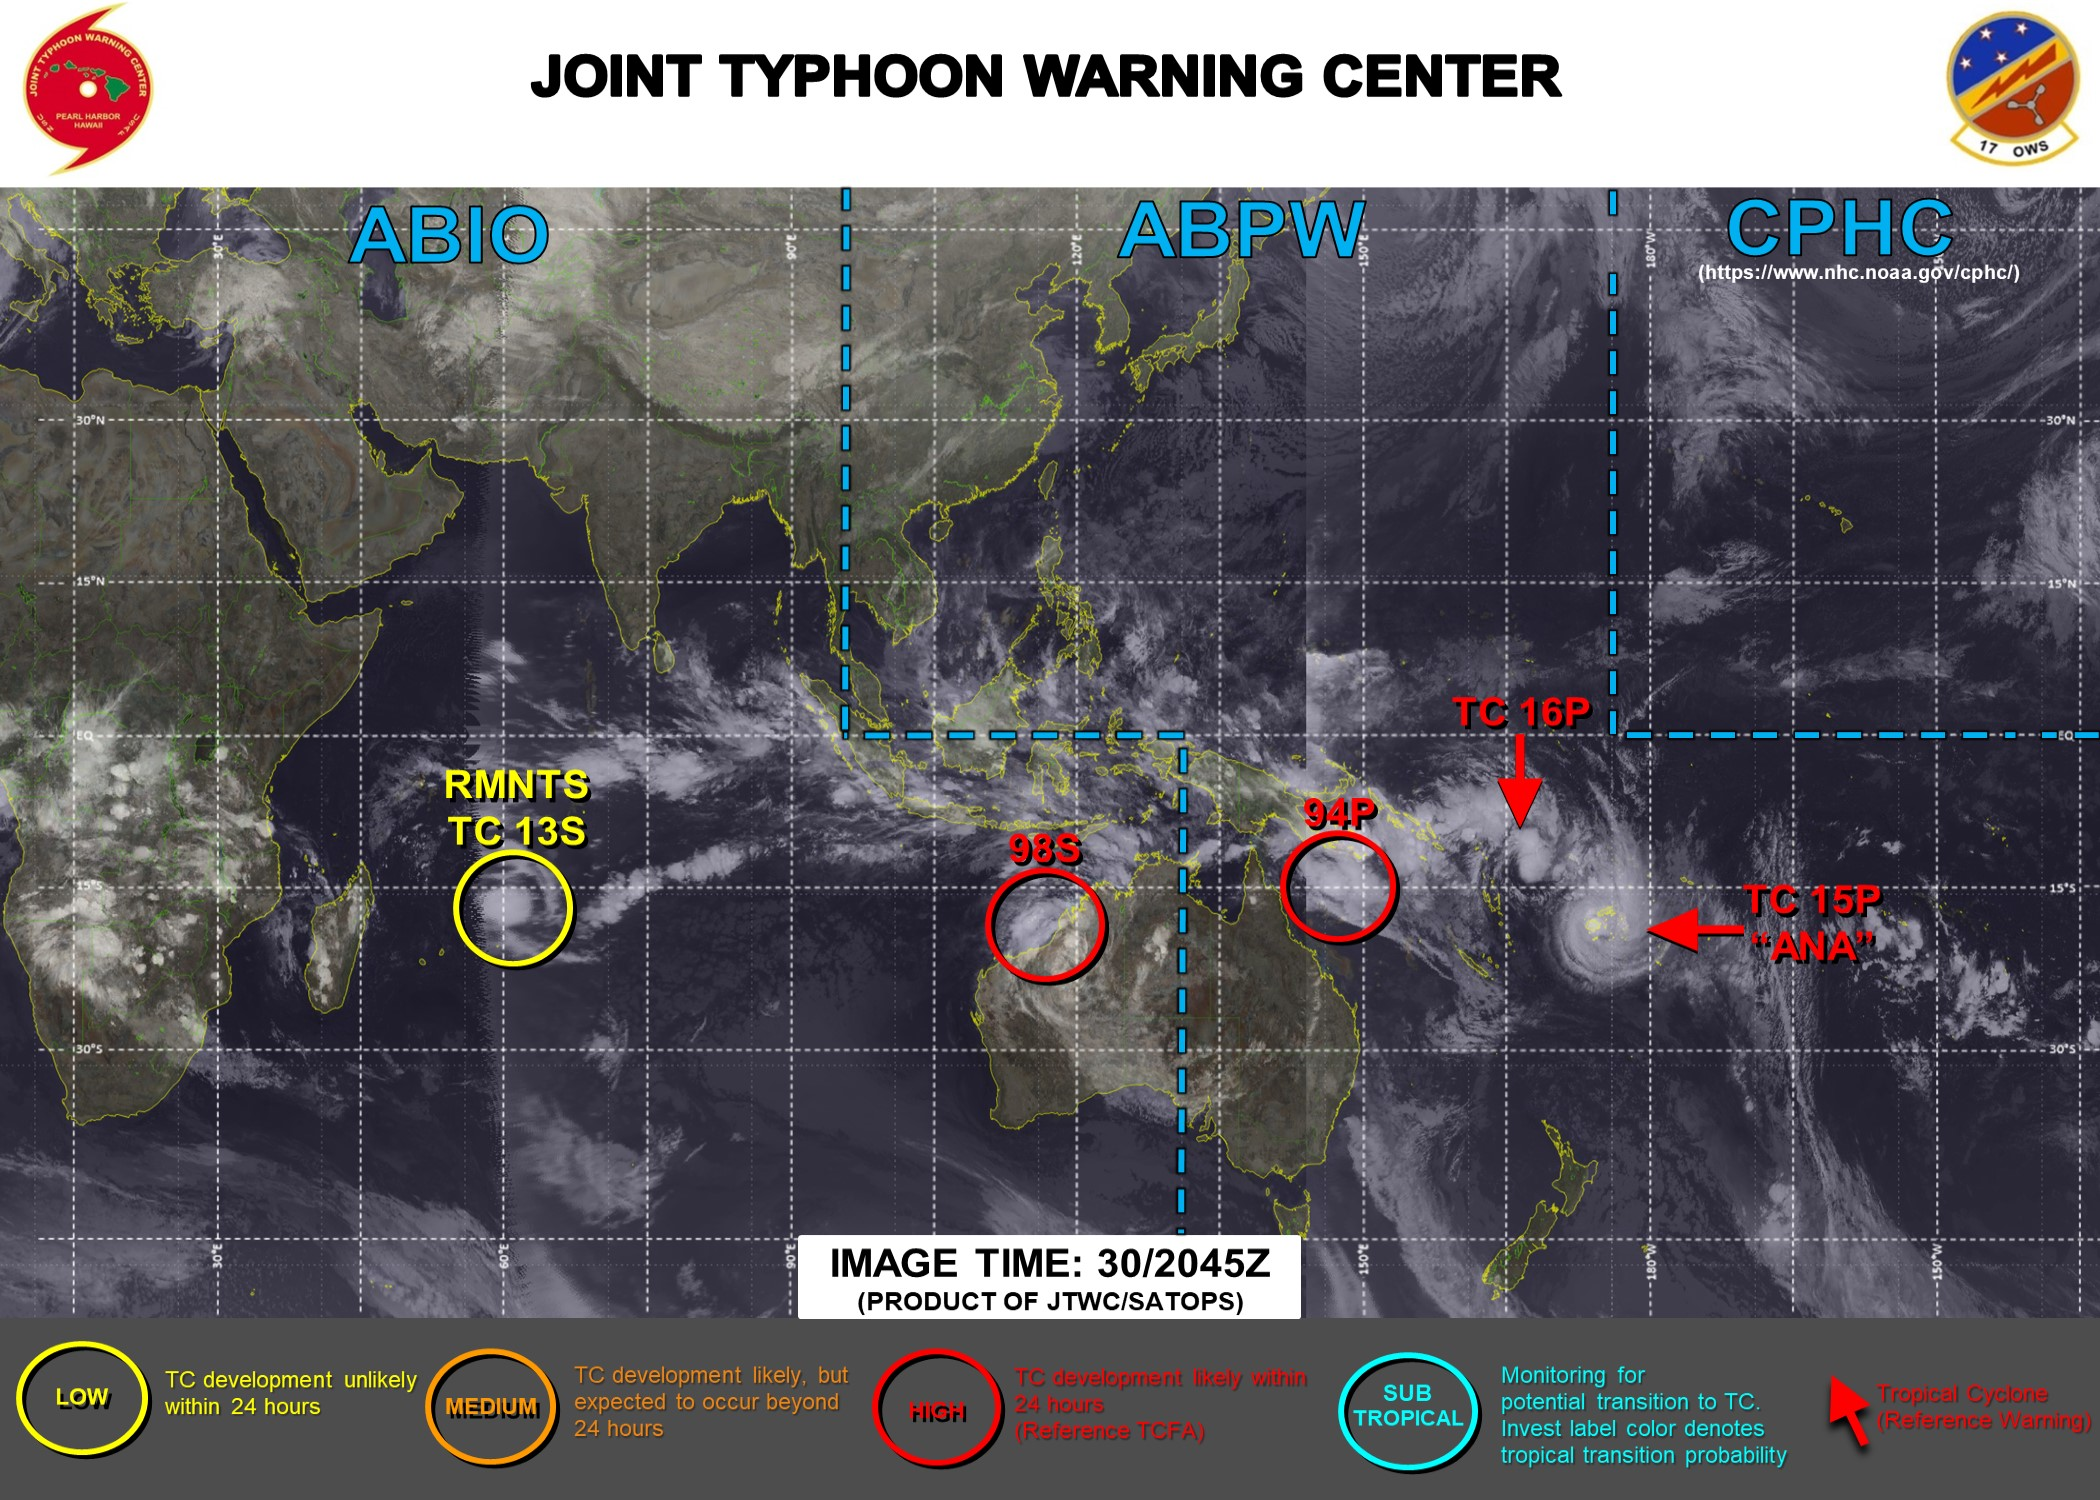 INVEST 99P IS NOW TC 16P. JTWC HAS BEEN ISSUING 6HOURLY WARNINGS ON 15P(ANA) AND 16P(NONAME). 3HOURLY SATELLITE BULLETINS ARE PROVIDED FOR 15P AND 16P ALONG WITH INVEST 94P AND INVEST 98S.